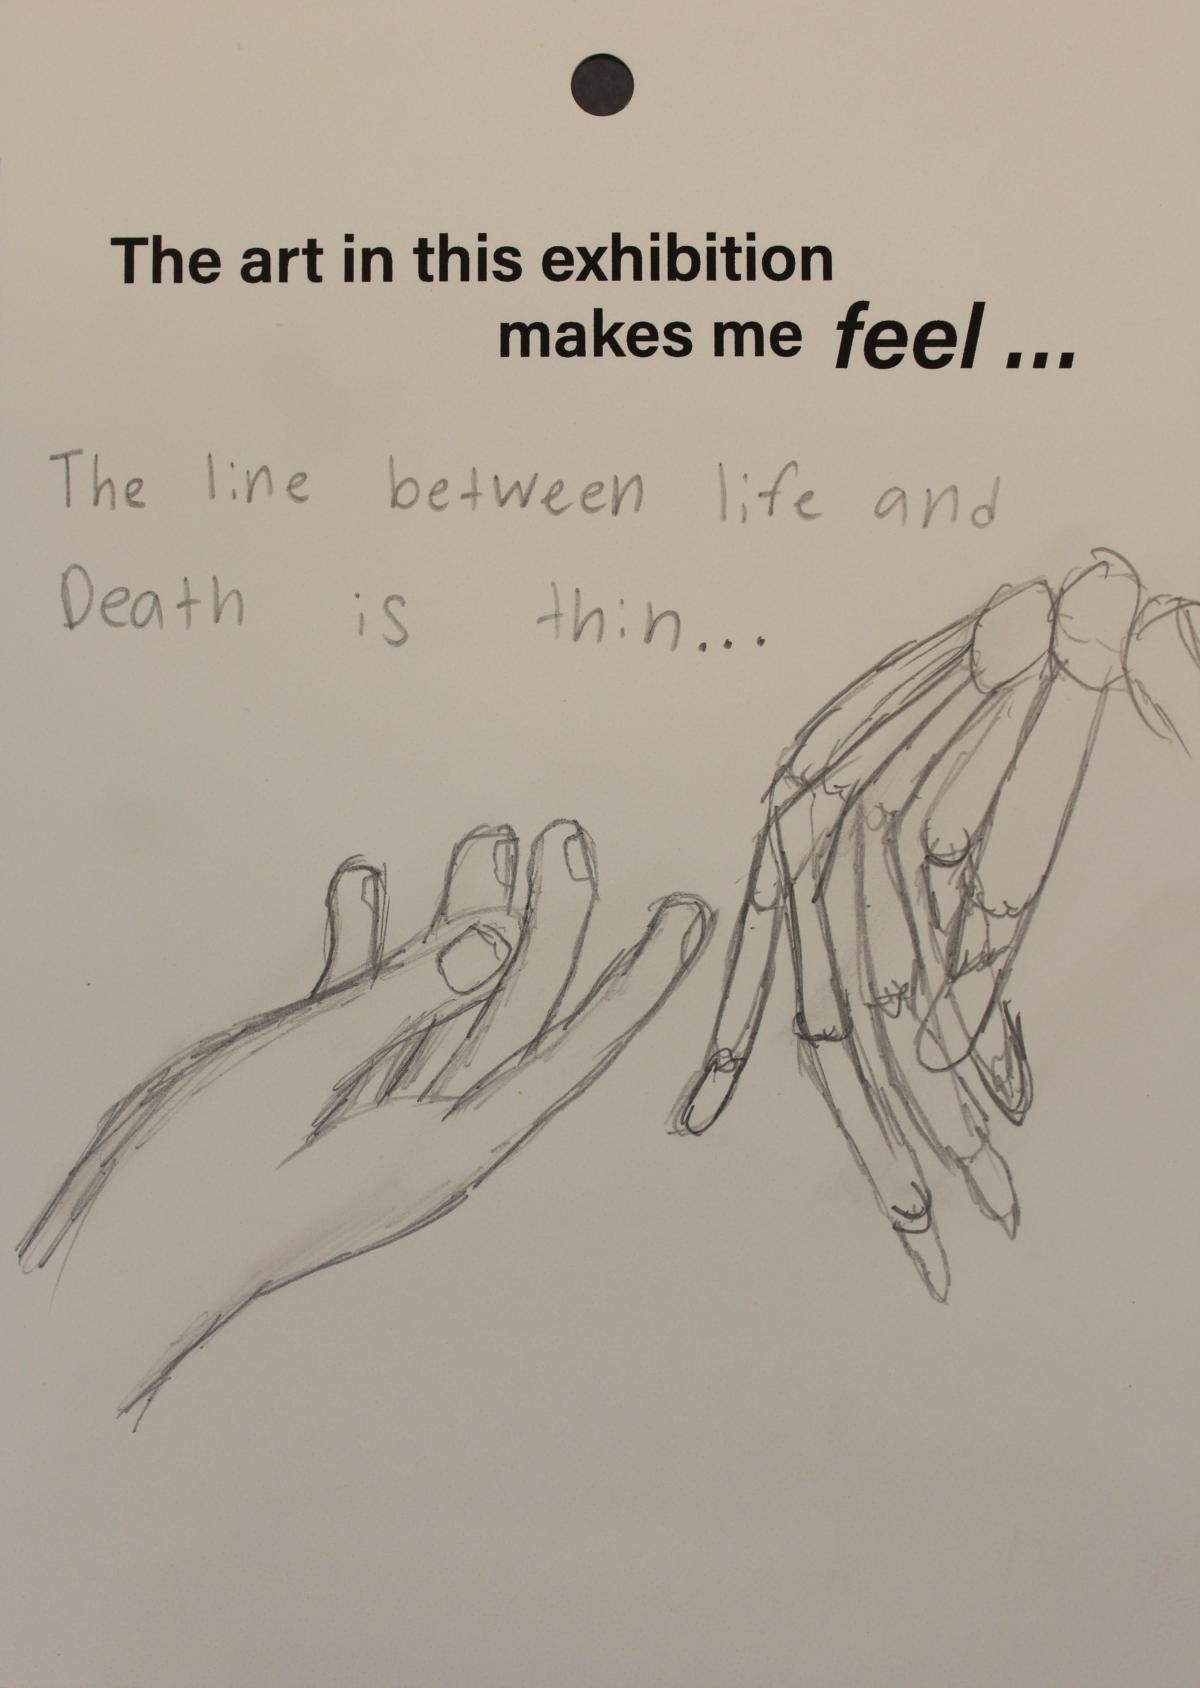 A visitor draws a hand and a skeletal hand